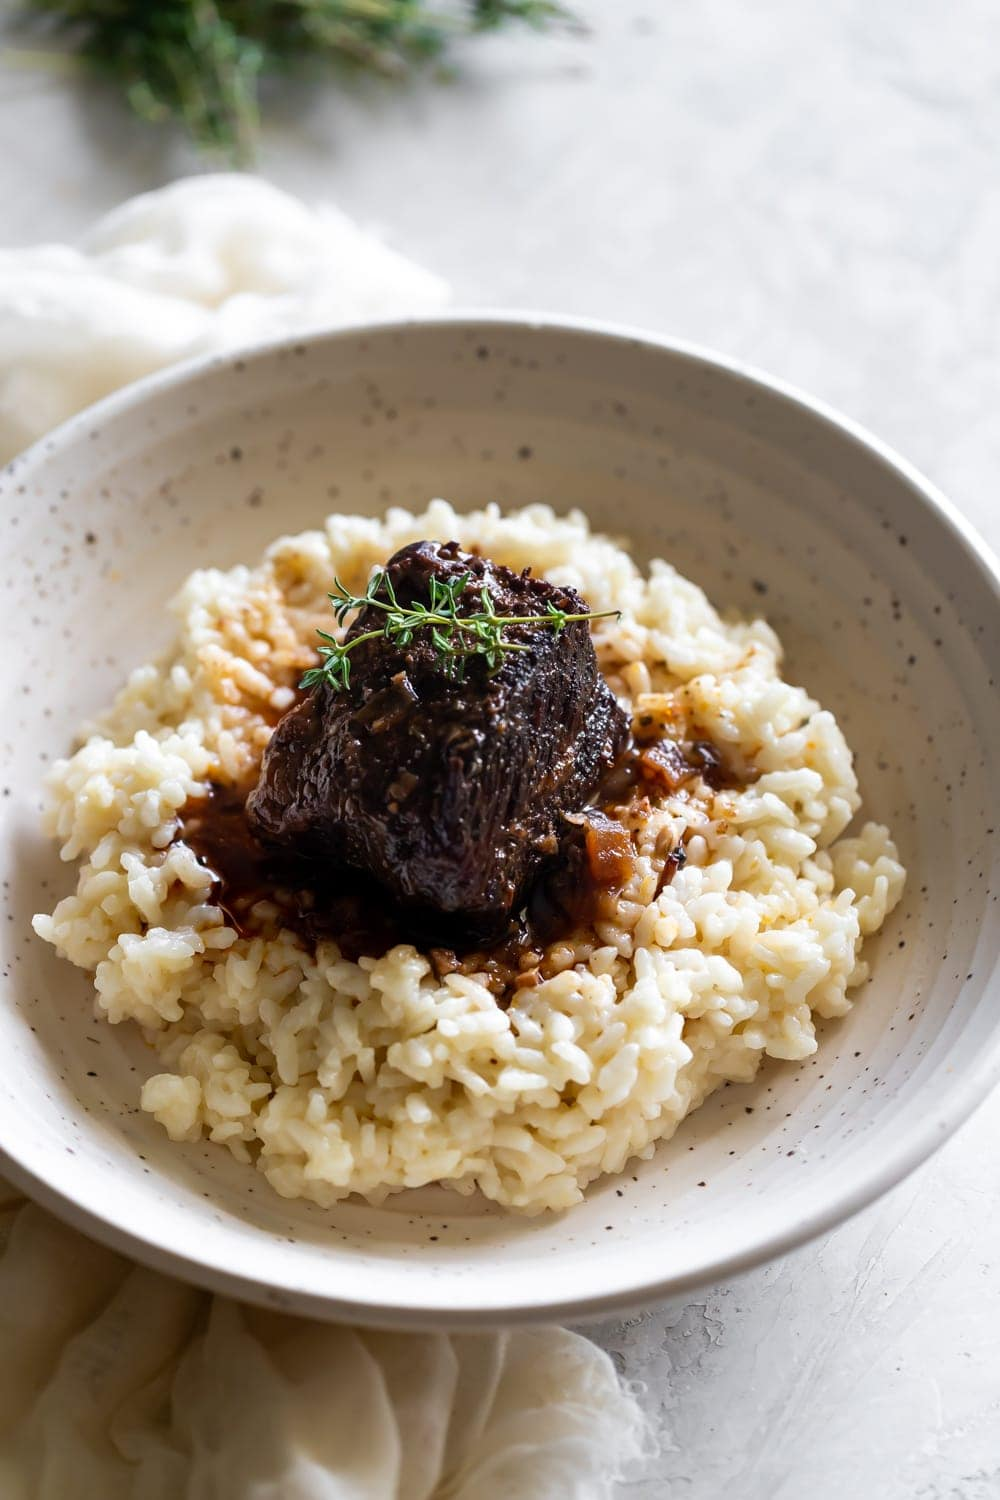 red wine braised short ribs on top of Parmesan risotto in a ceramic bowl with thyme